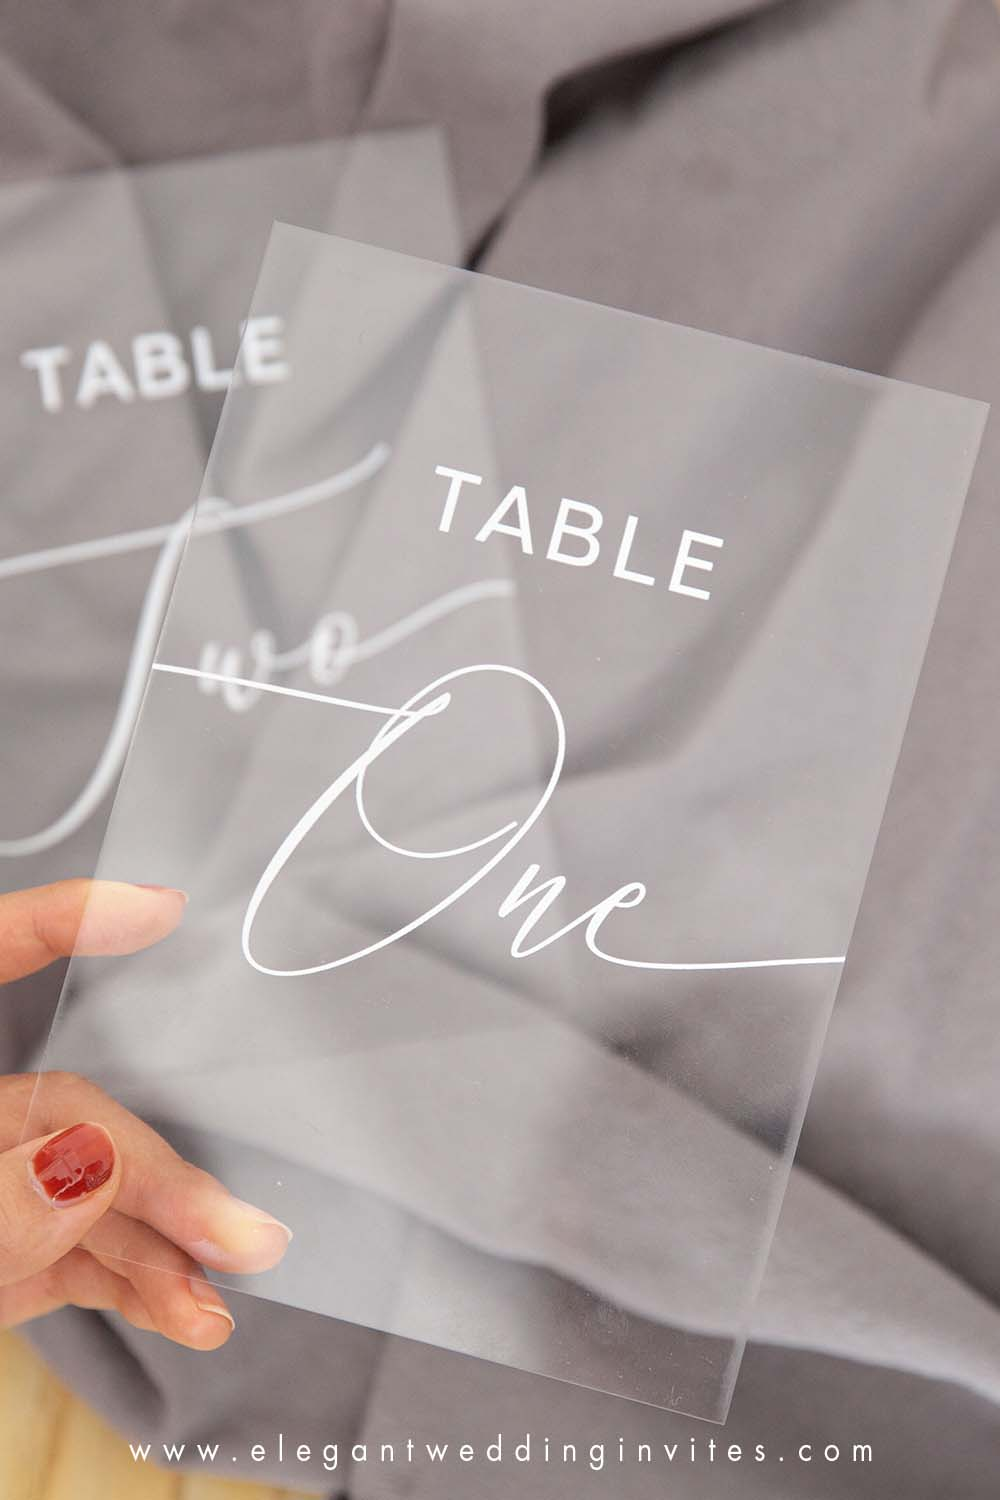 wedding table numbers acrylic table numbers clear and chic calligraphy